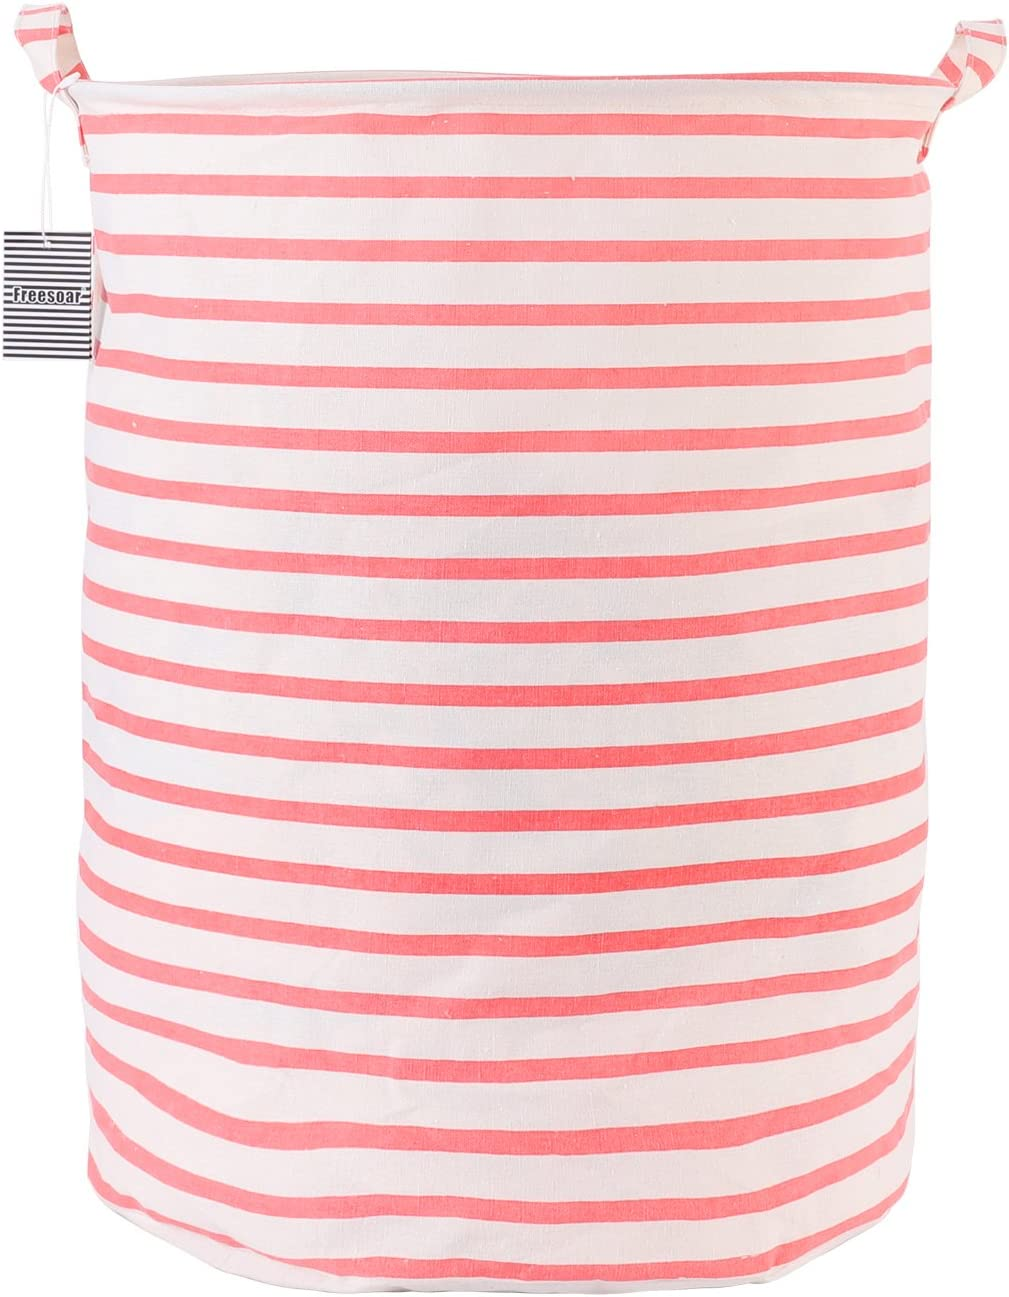 Laundry Basket Hamper Bag Large Foldable Collapsible Accessories Drawstring Waterproof Cotton Space Saving Storage Organizer Perfect for Kids Boys Girls Toys Room, Bedroom, Nursery,Home(Red)